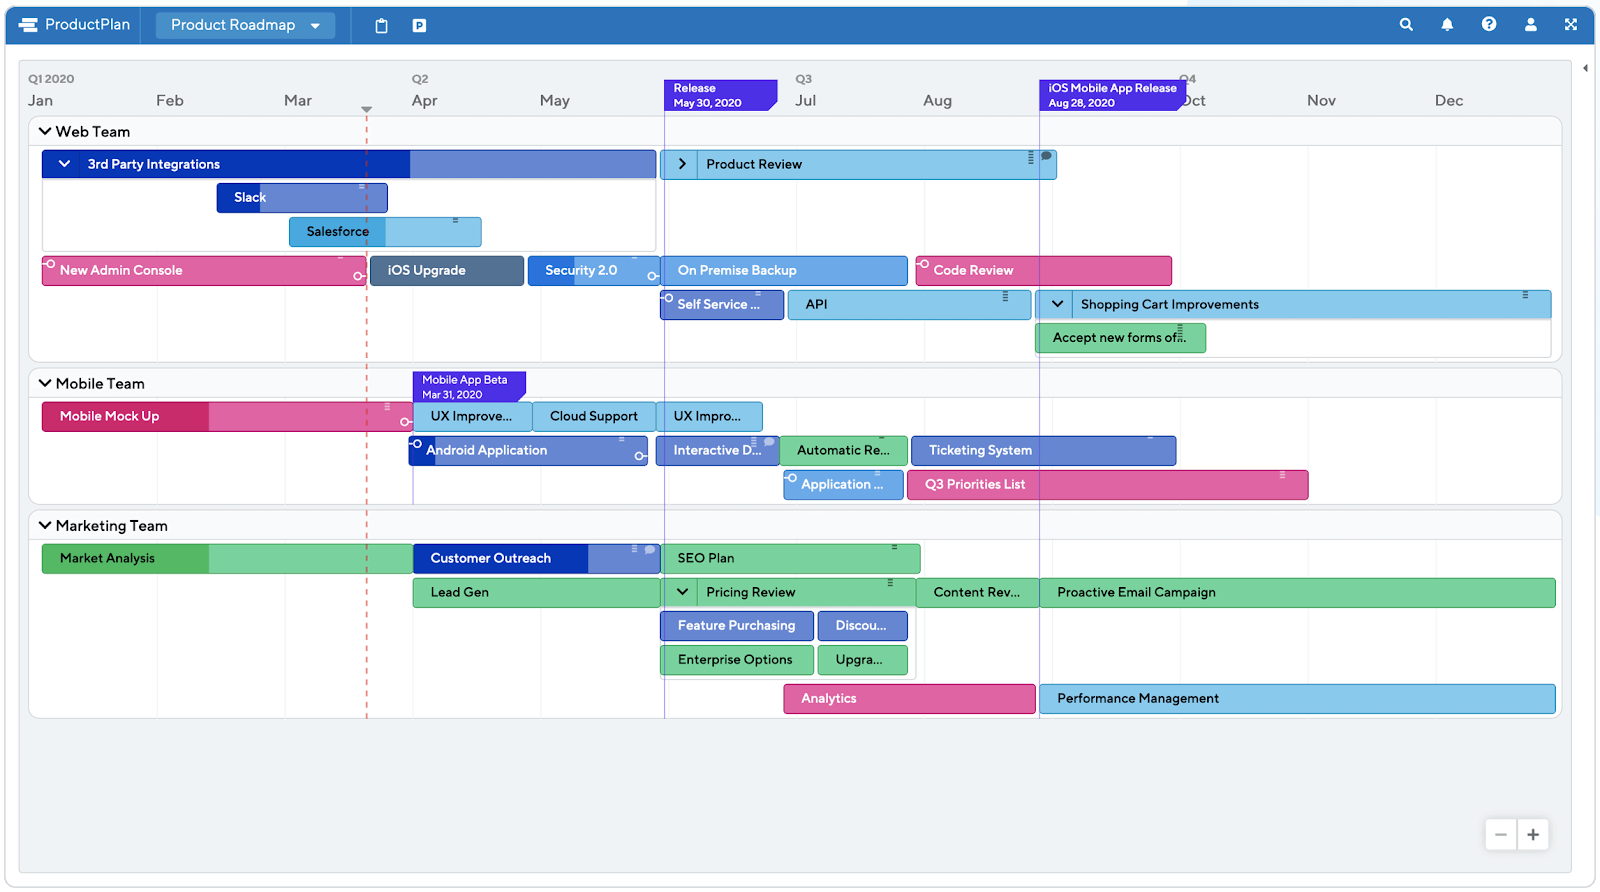 ProductPlan product roadmap template